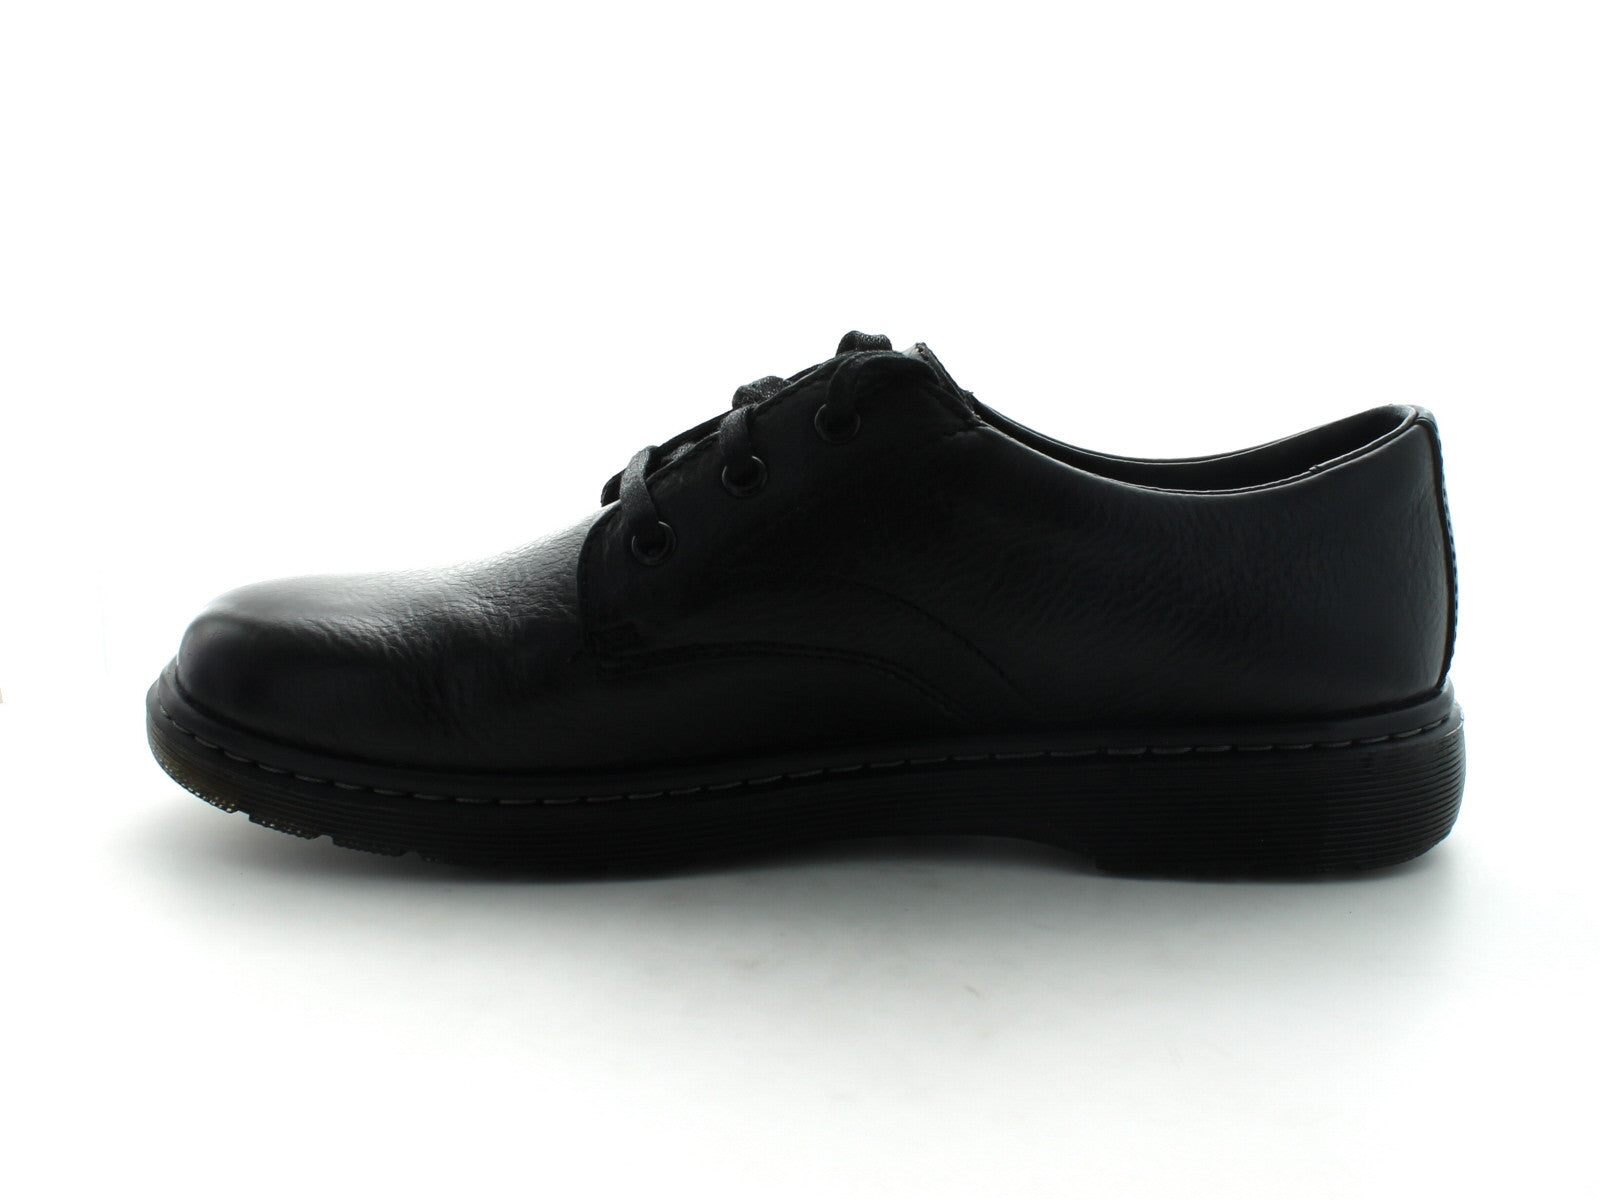 Dr. Martens 1480 Andre | Laced Shoes | Black Leather – Walsh